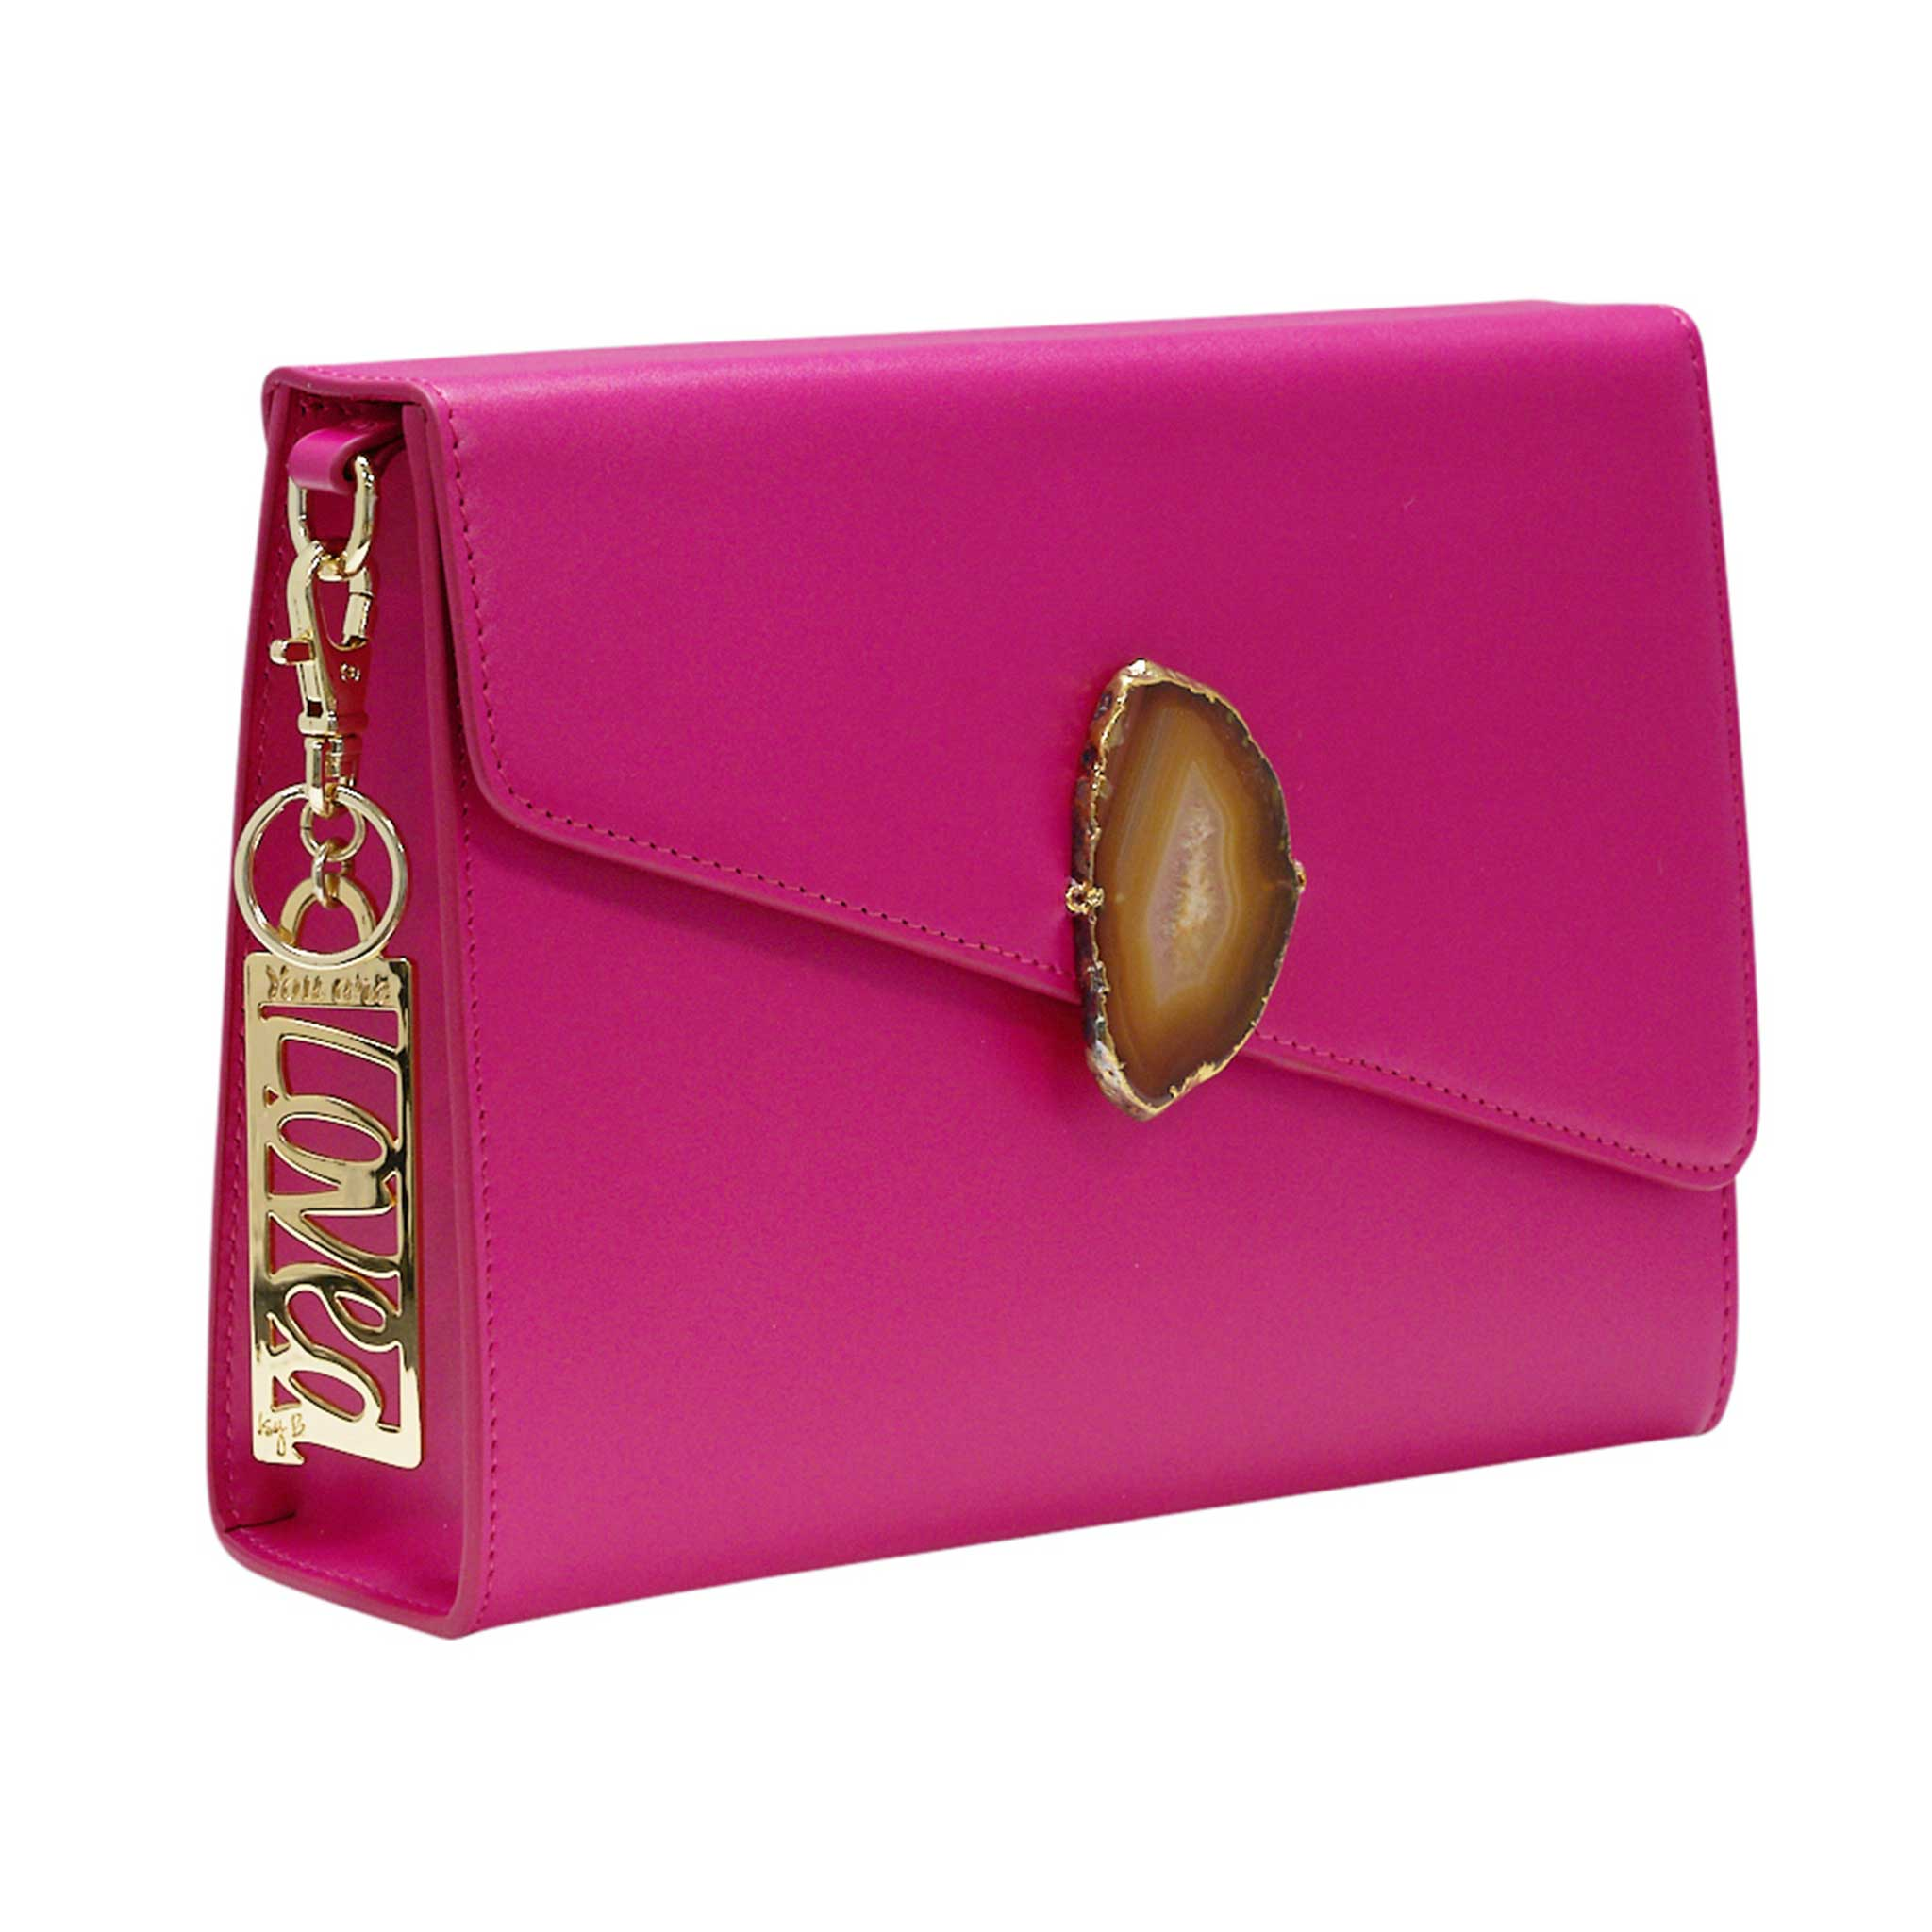 LOVED BAG - PINK RUBY LEATHER WITH BROWN AGATE - 1.01.001.033